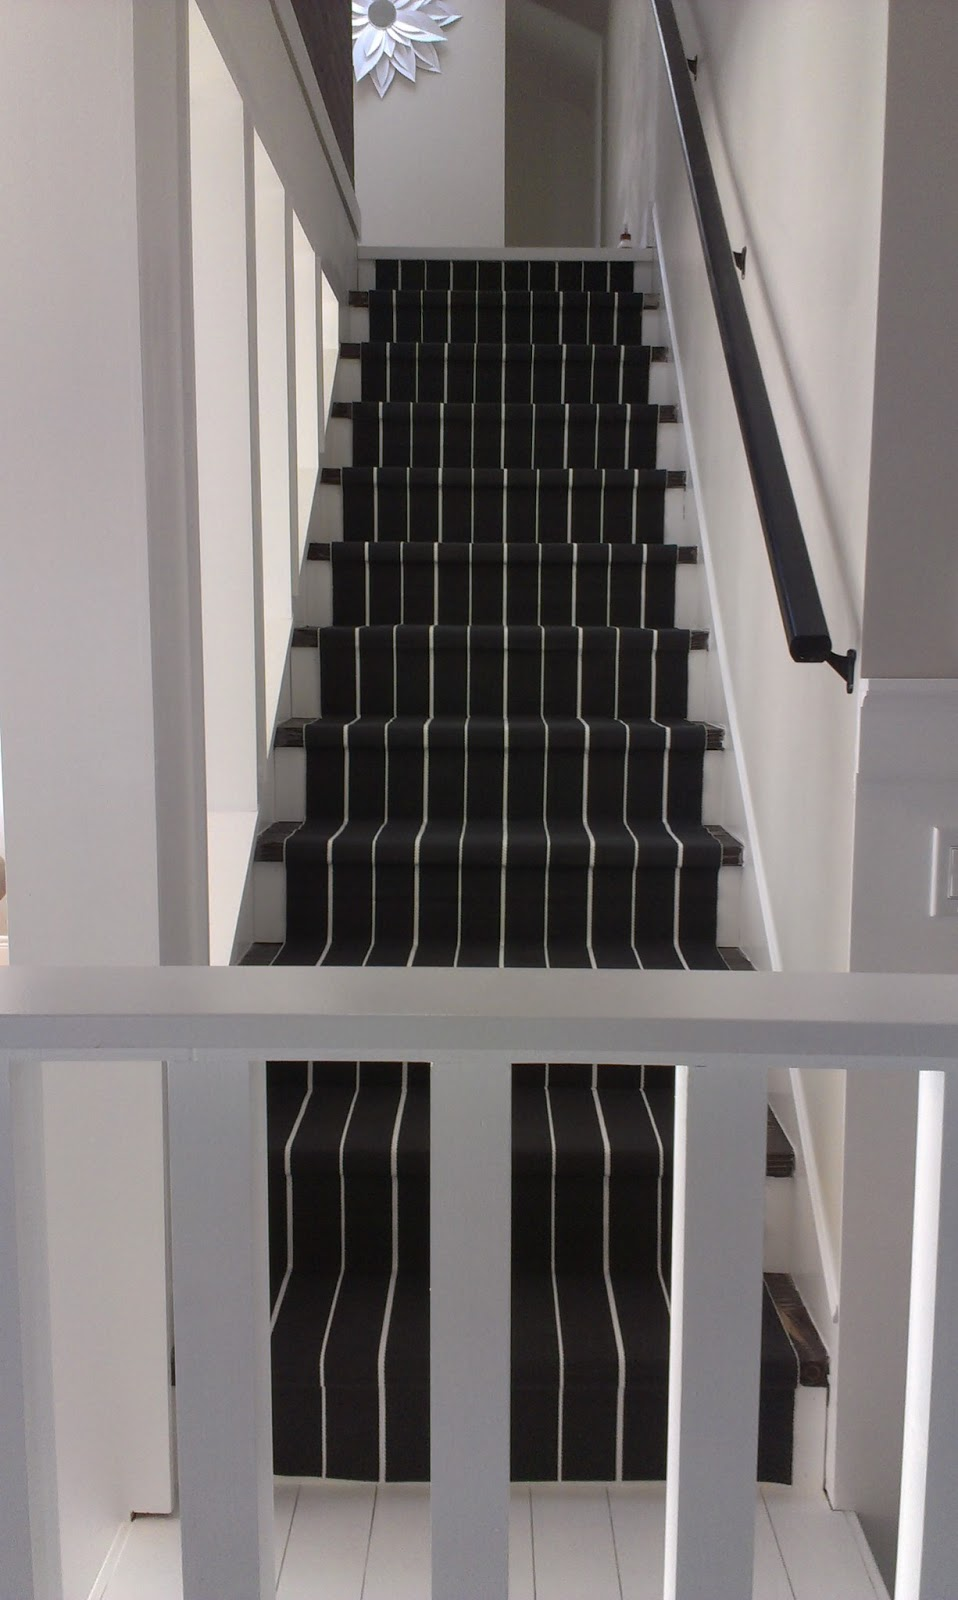 I Took This Photo While I Was Waiting For The Paint To Dry On The Trim  Piece. I Placed At The Bottom Of The Stairs To Cover The End Of The Stair  Runner.